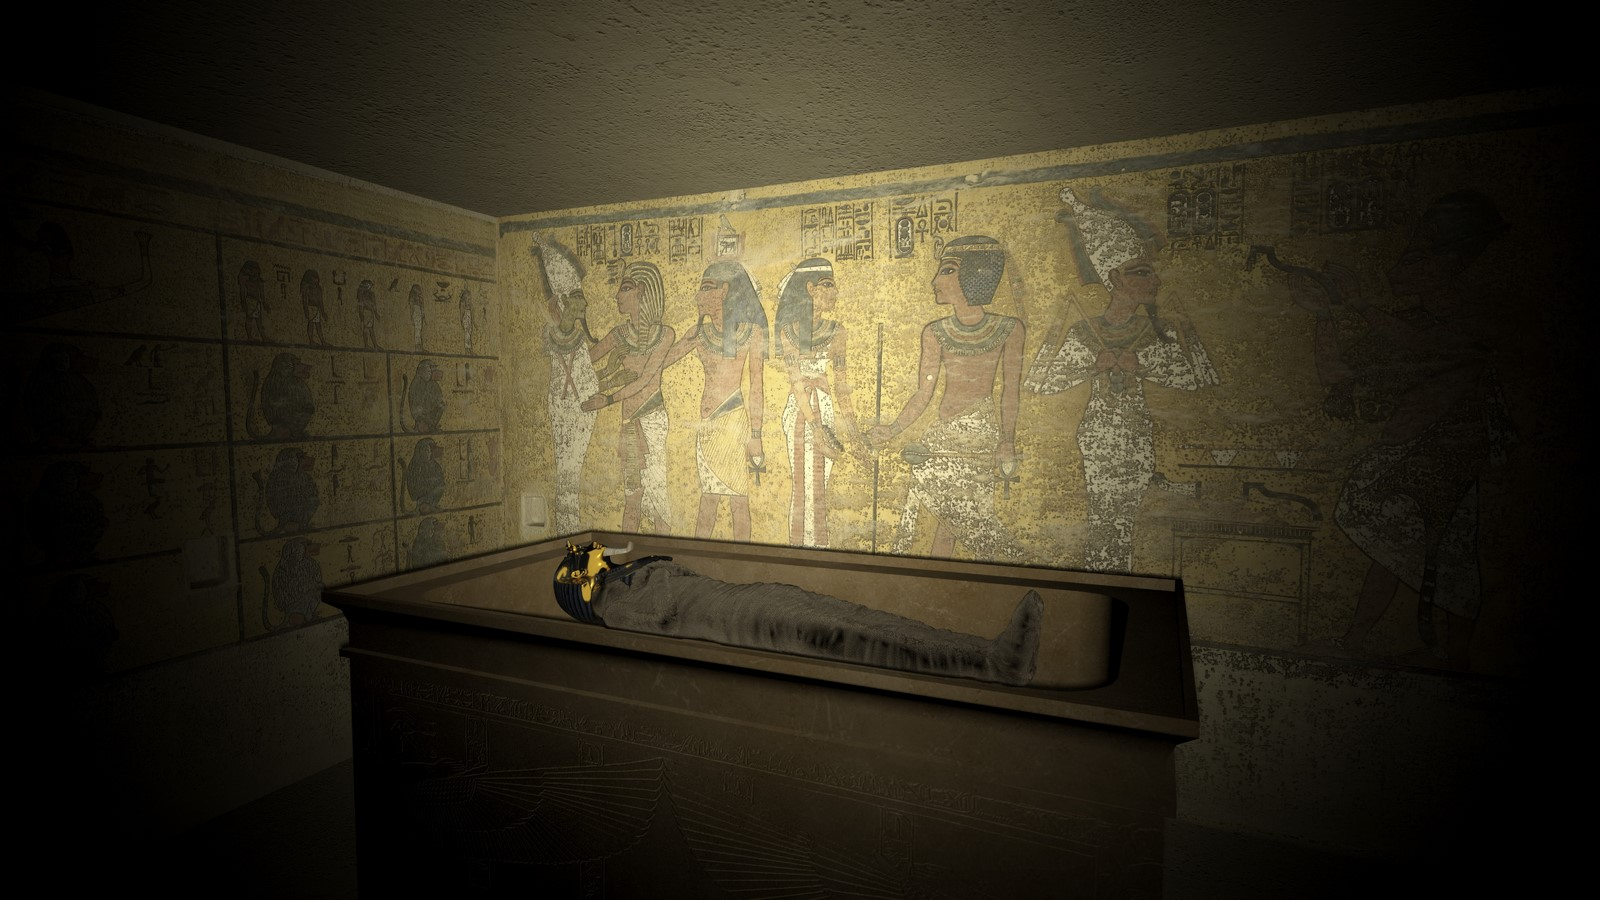 Youtube for Architects Tutankhamun's Treasures- Lost Treasures of Egypt by National Geographic - Sheet2